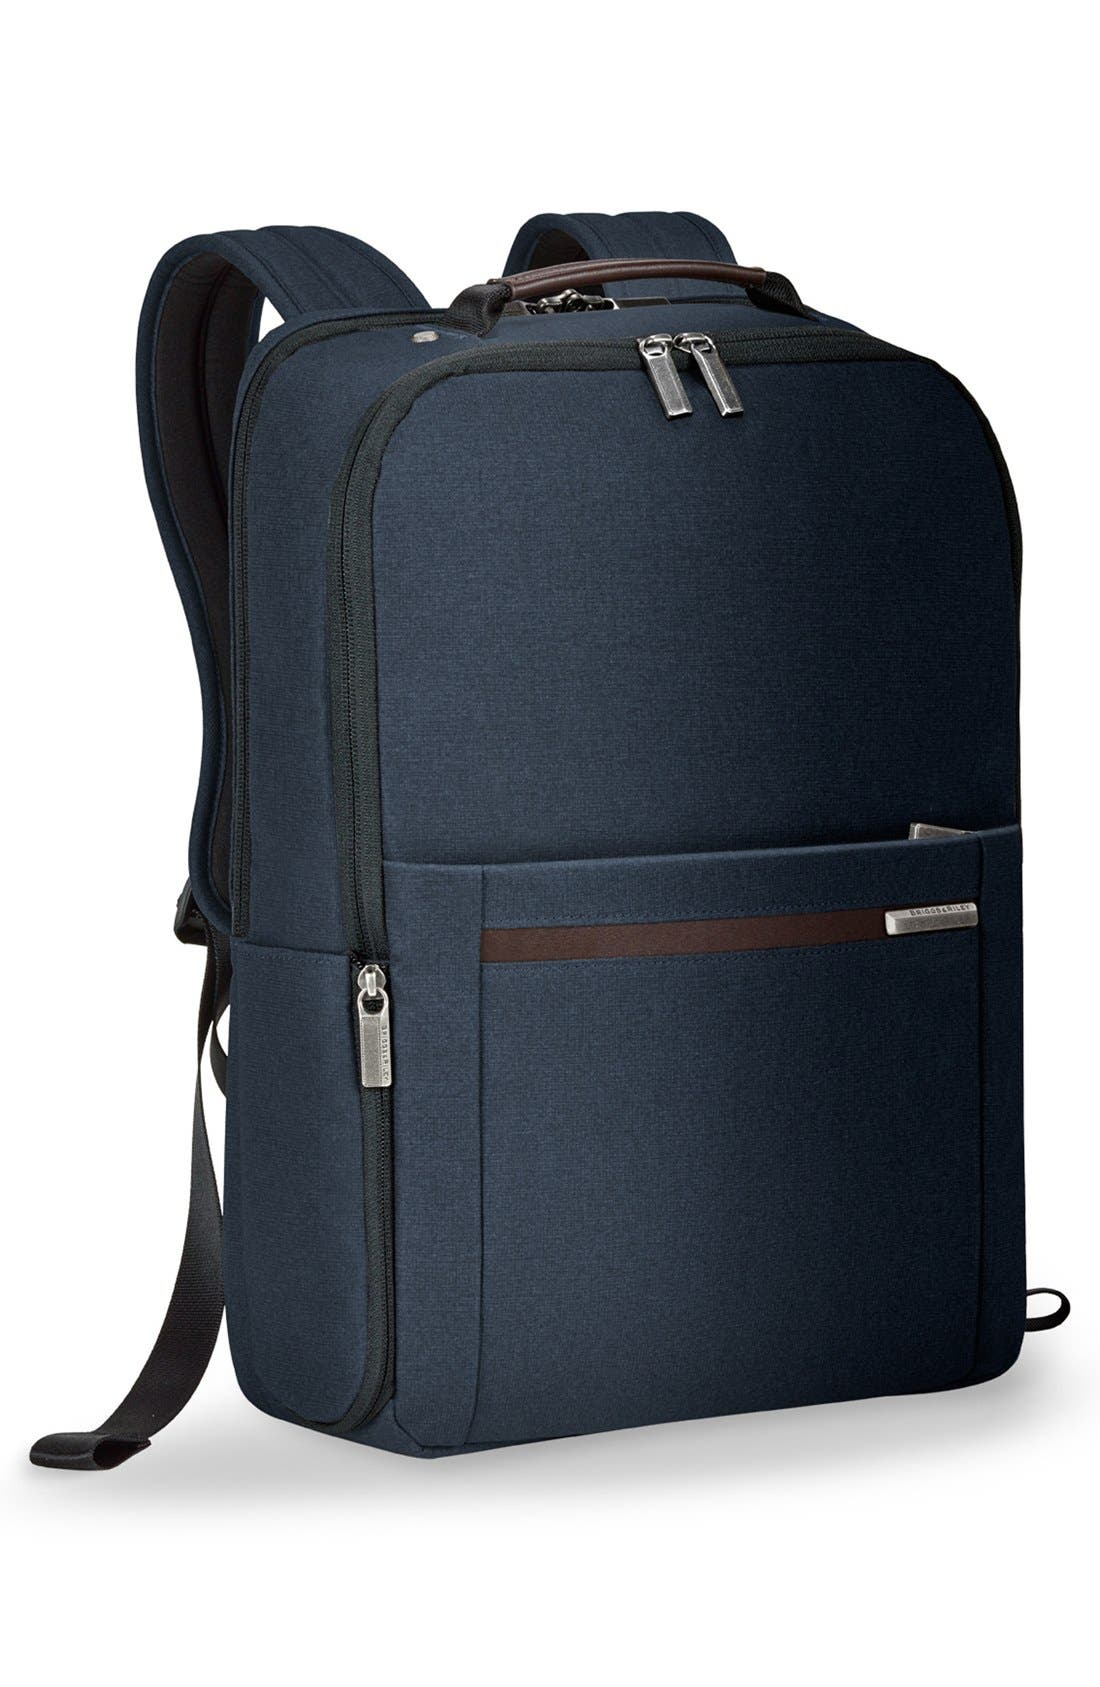 Kinzie Street Medium Backpack,                             Alternate thumbnail 3, color,                             Navy Blue